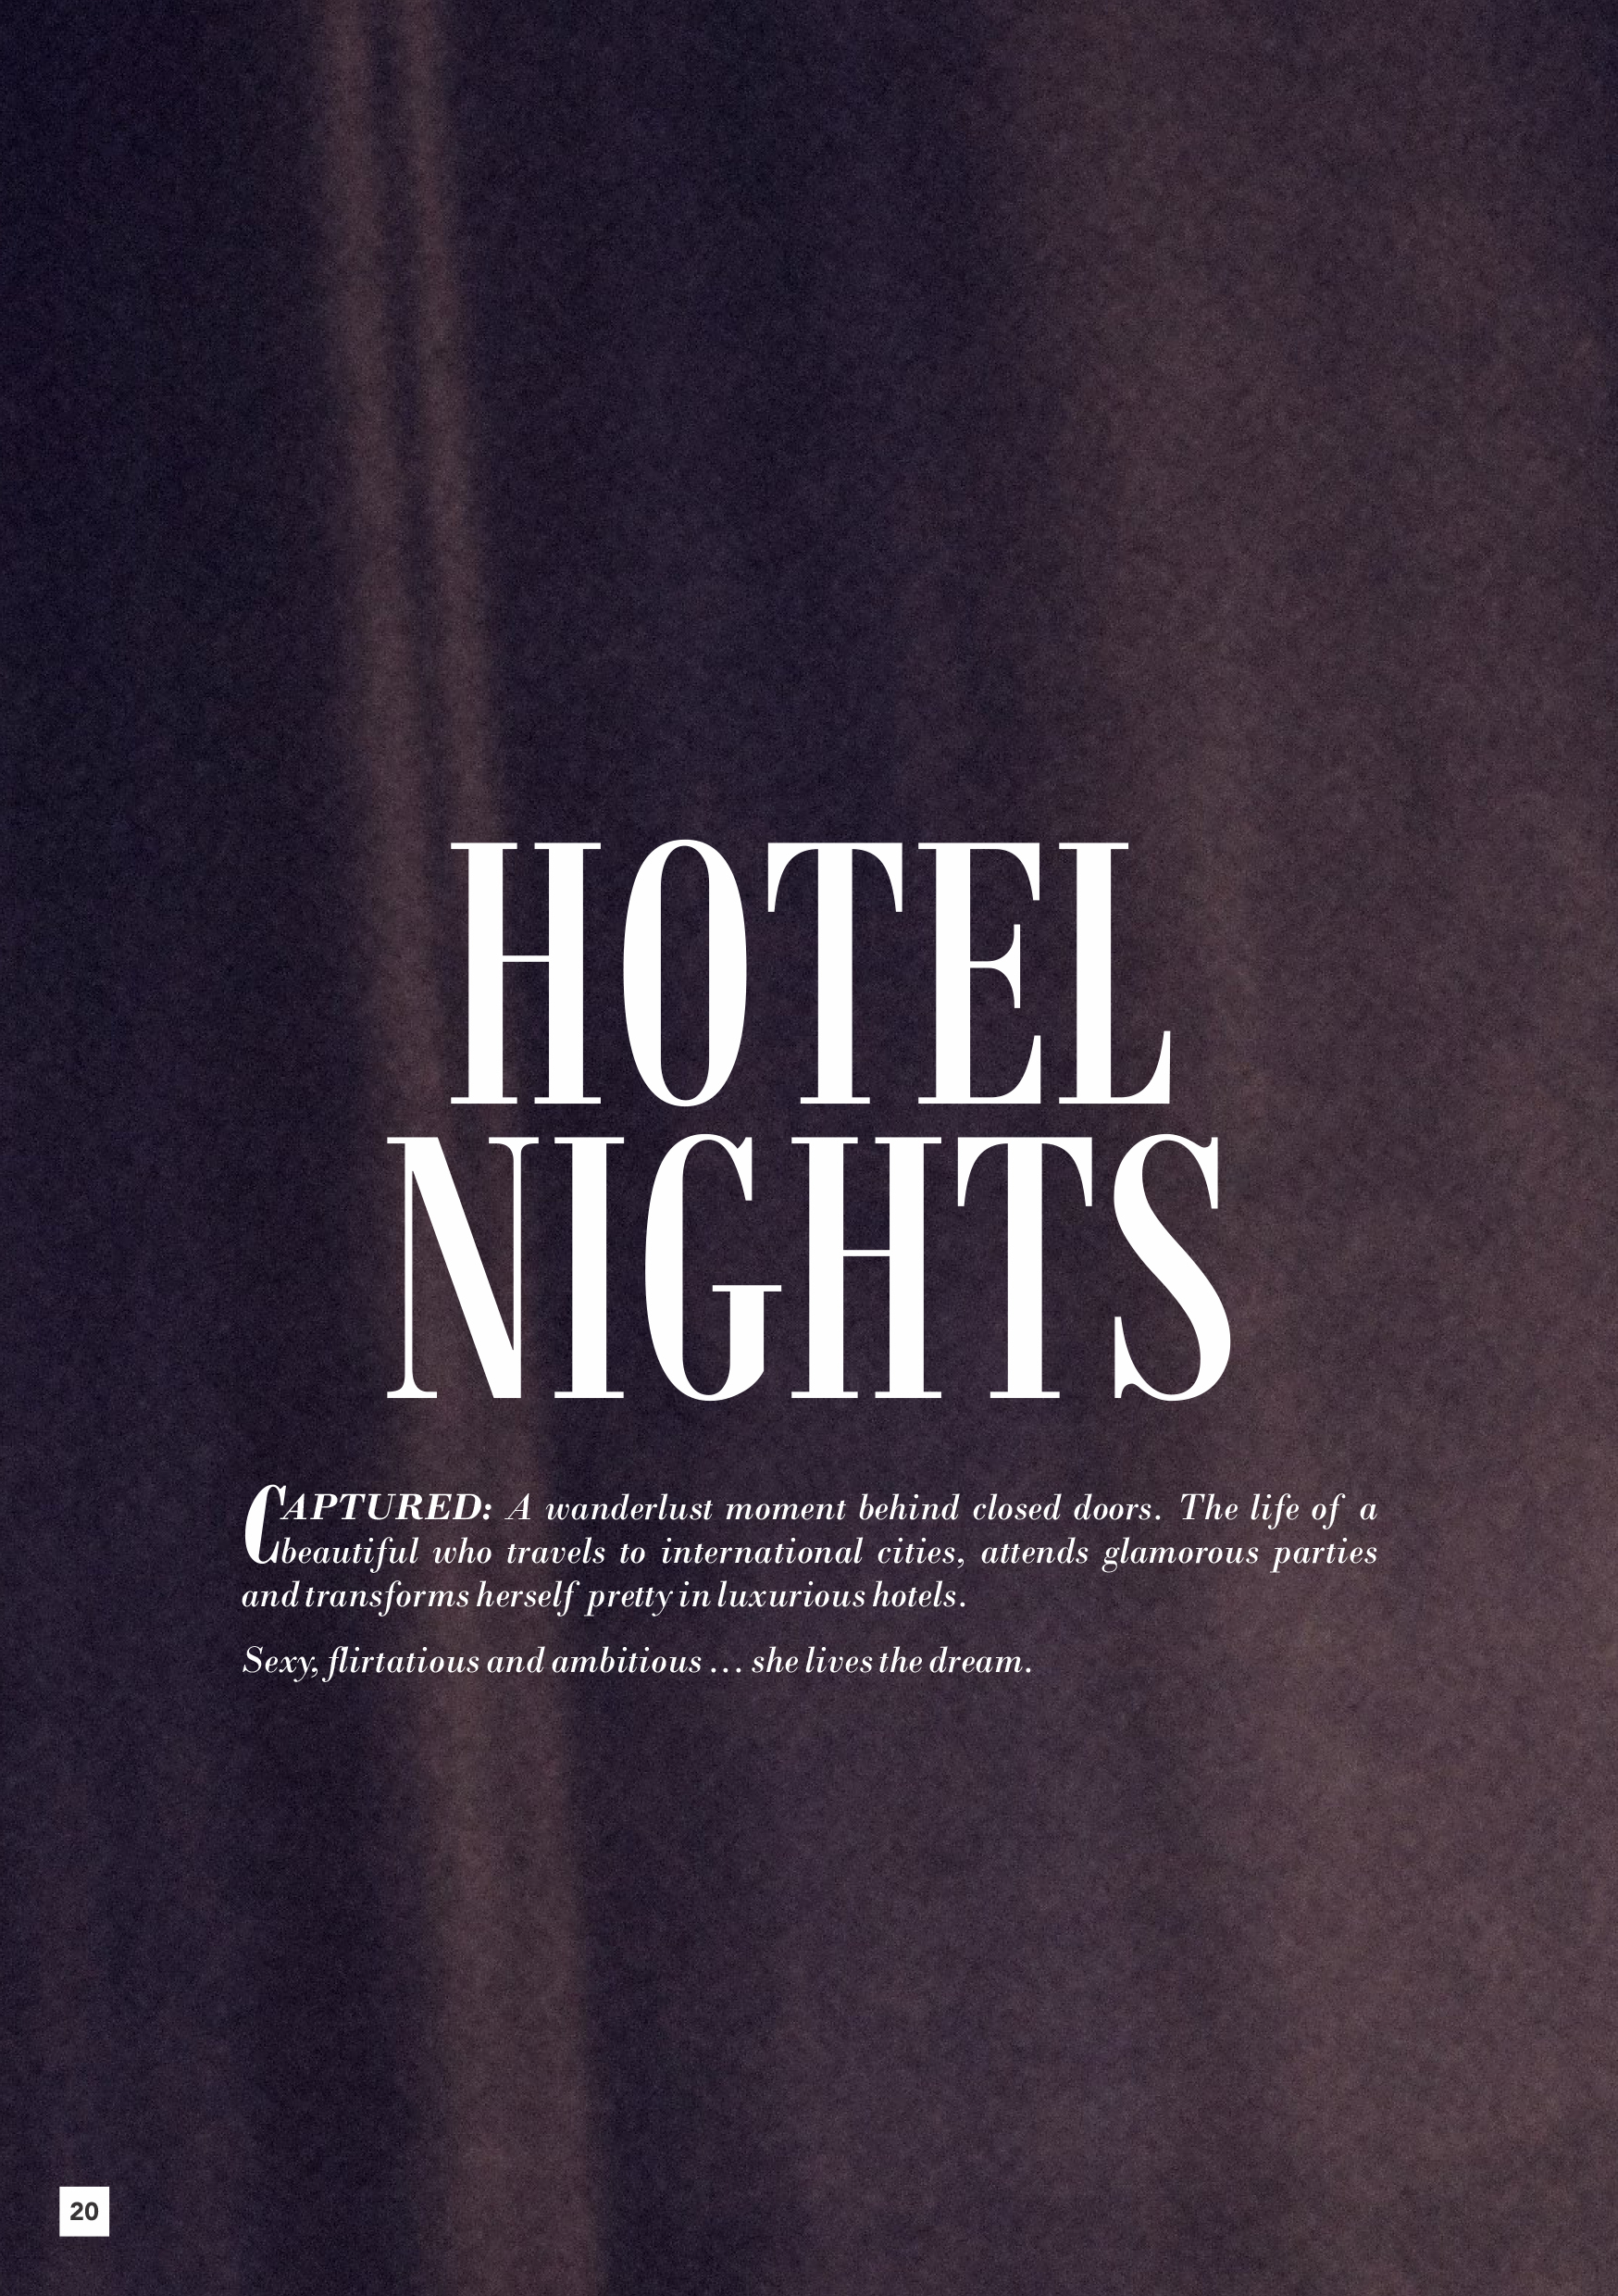 Fashion Weekly Issue 32 Hotel Nights Tear Sheet-2.jpg